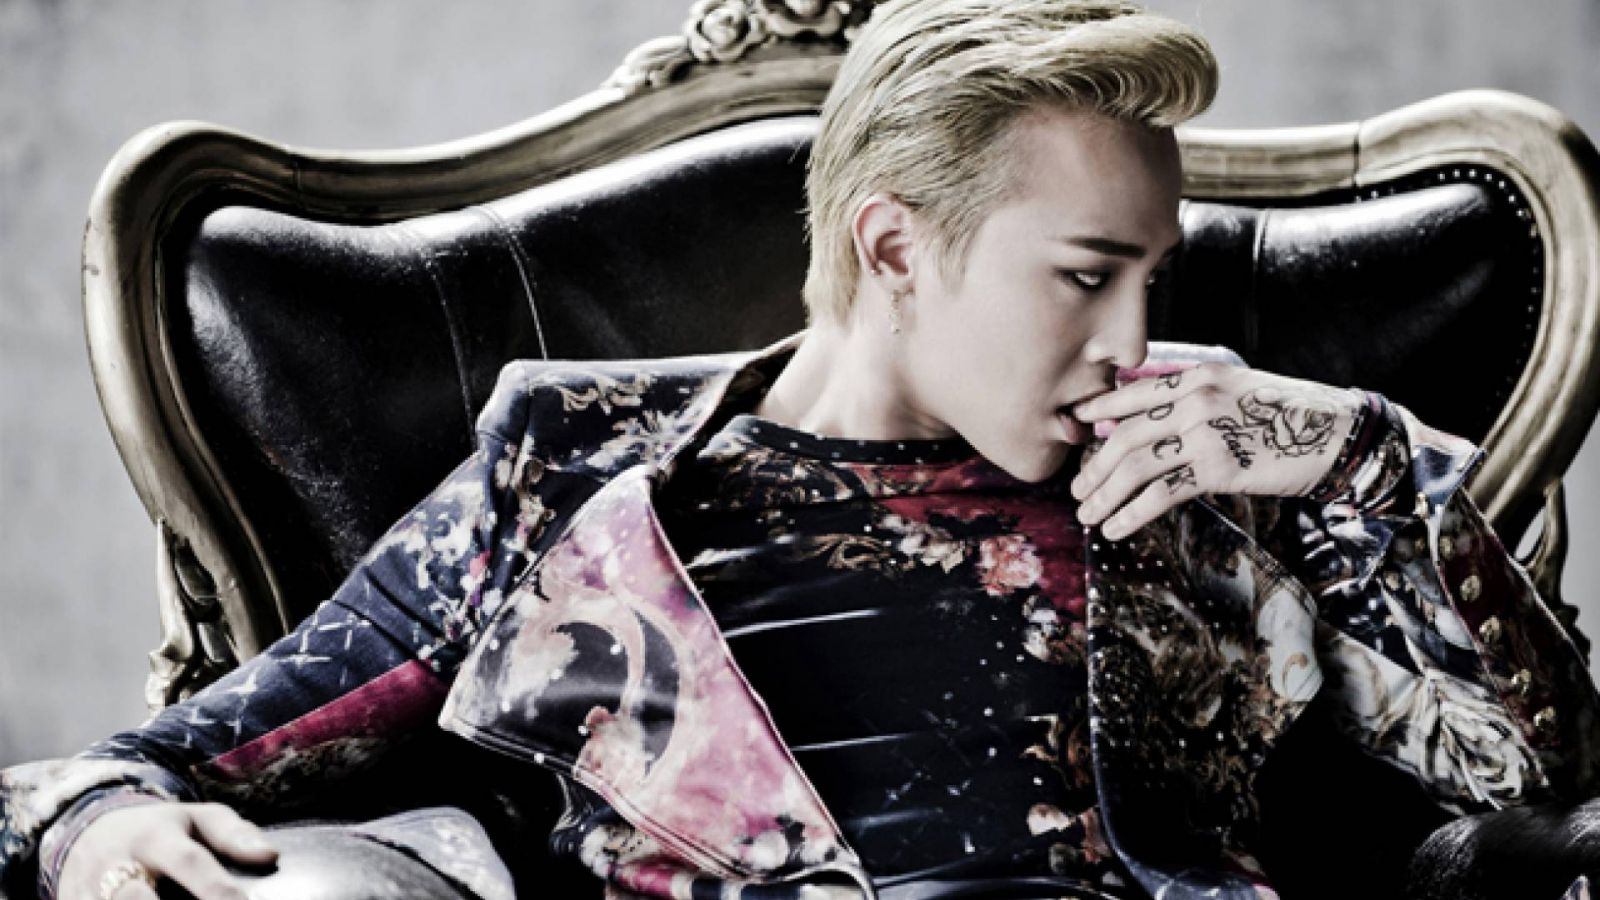 G-Dragon anuncia novo single © YG Entertainment